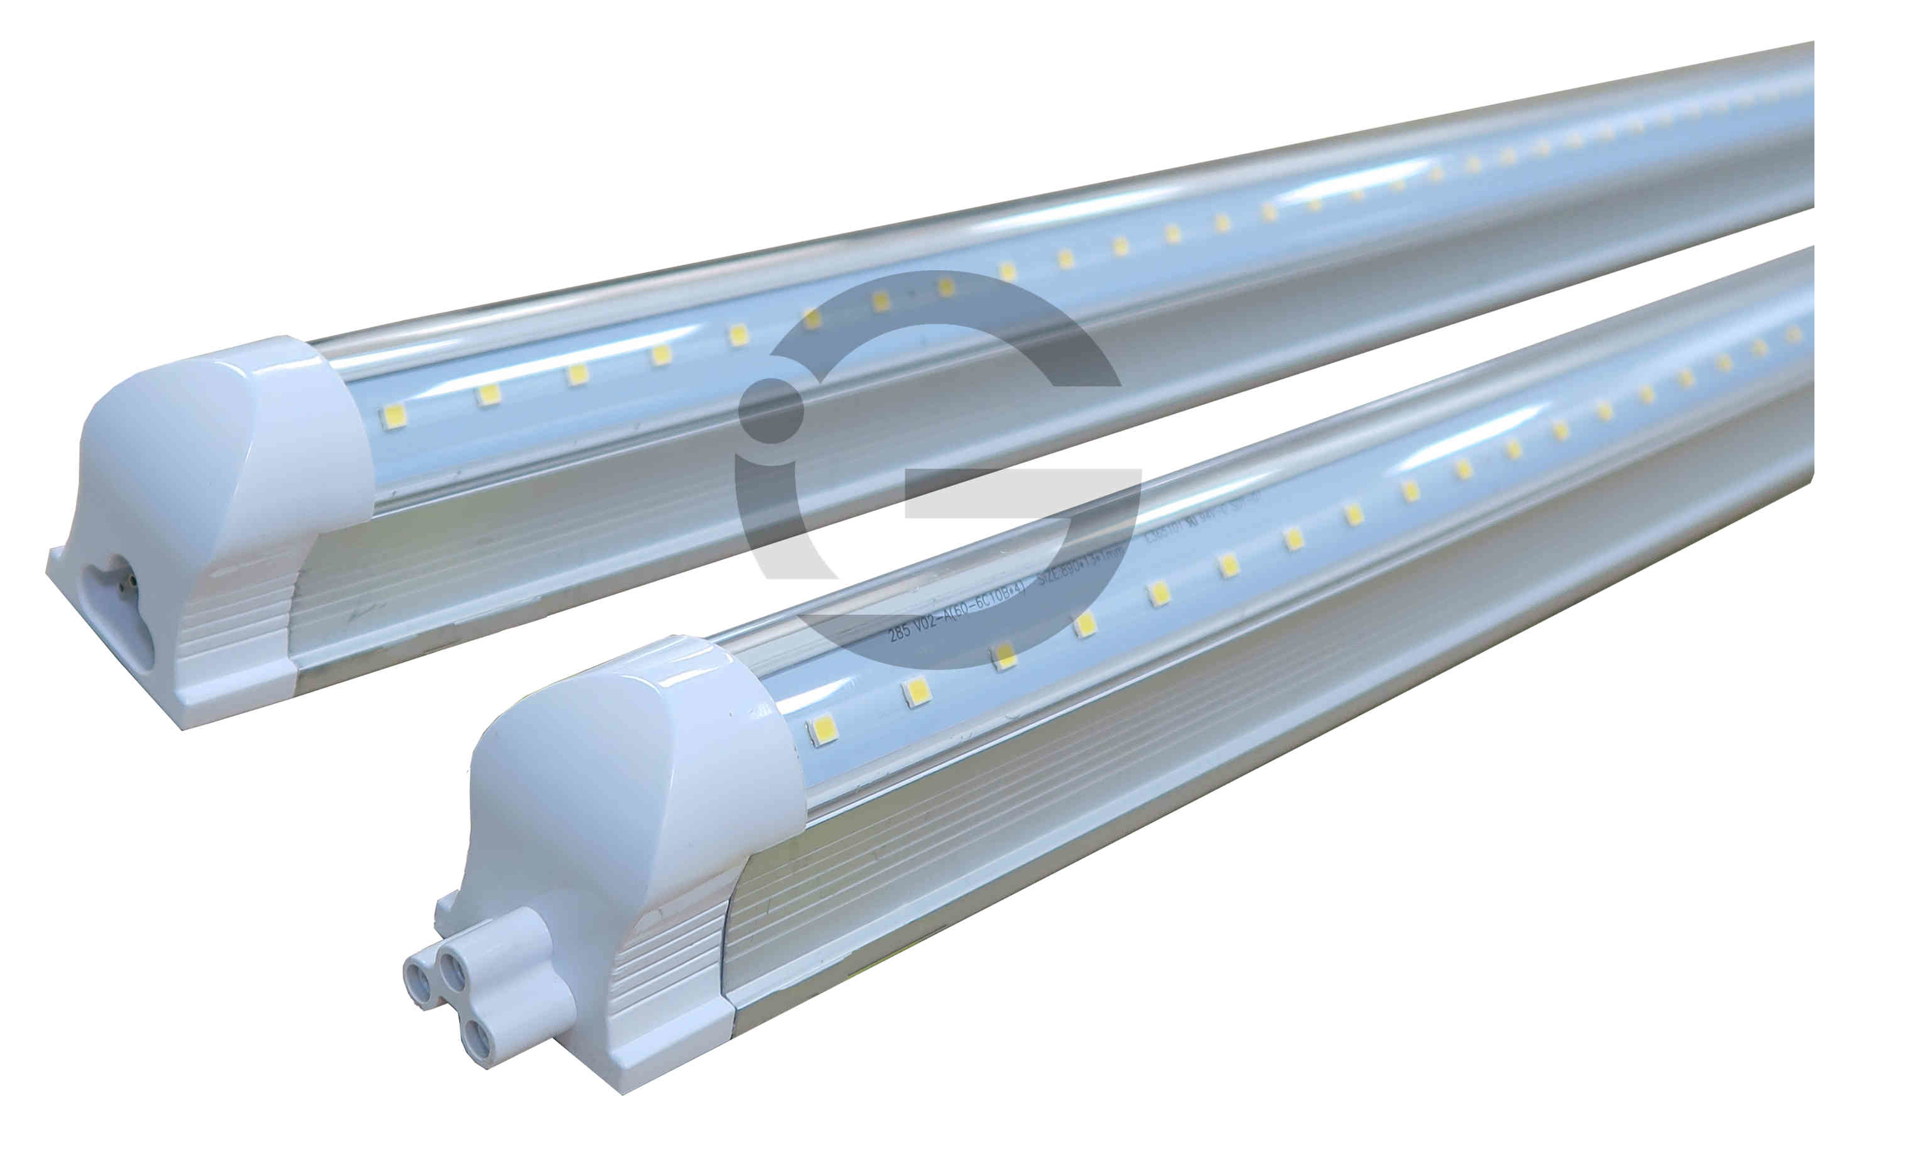 Picture of Integrated T8 Tube - 22W, 4ft - IGLO LED - Case of QTY 25.